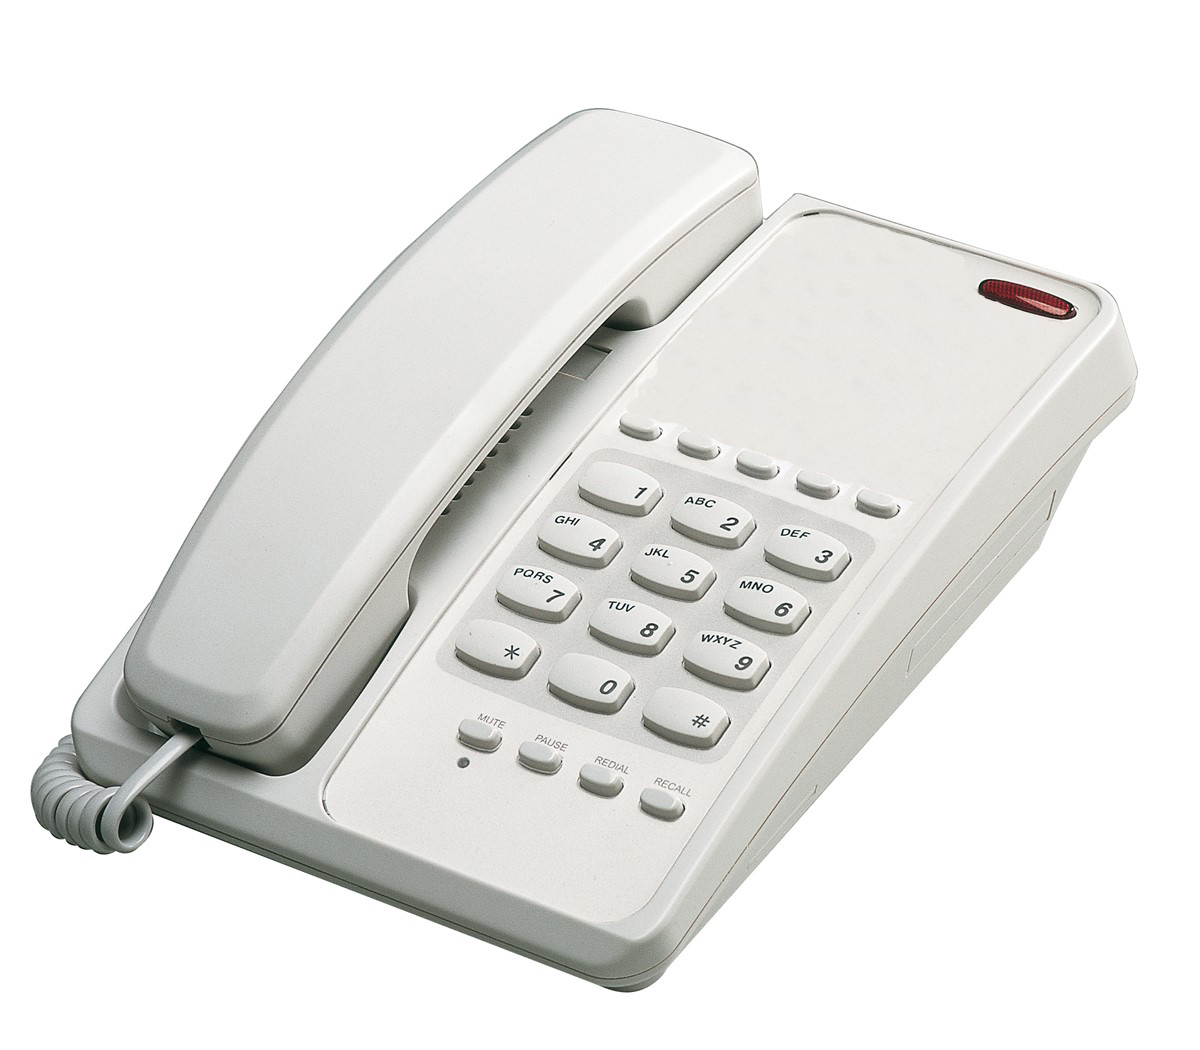 Interquartz Voyager Memory Telephone Red